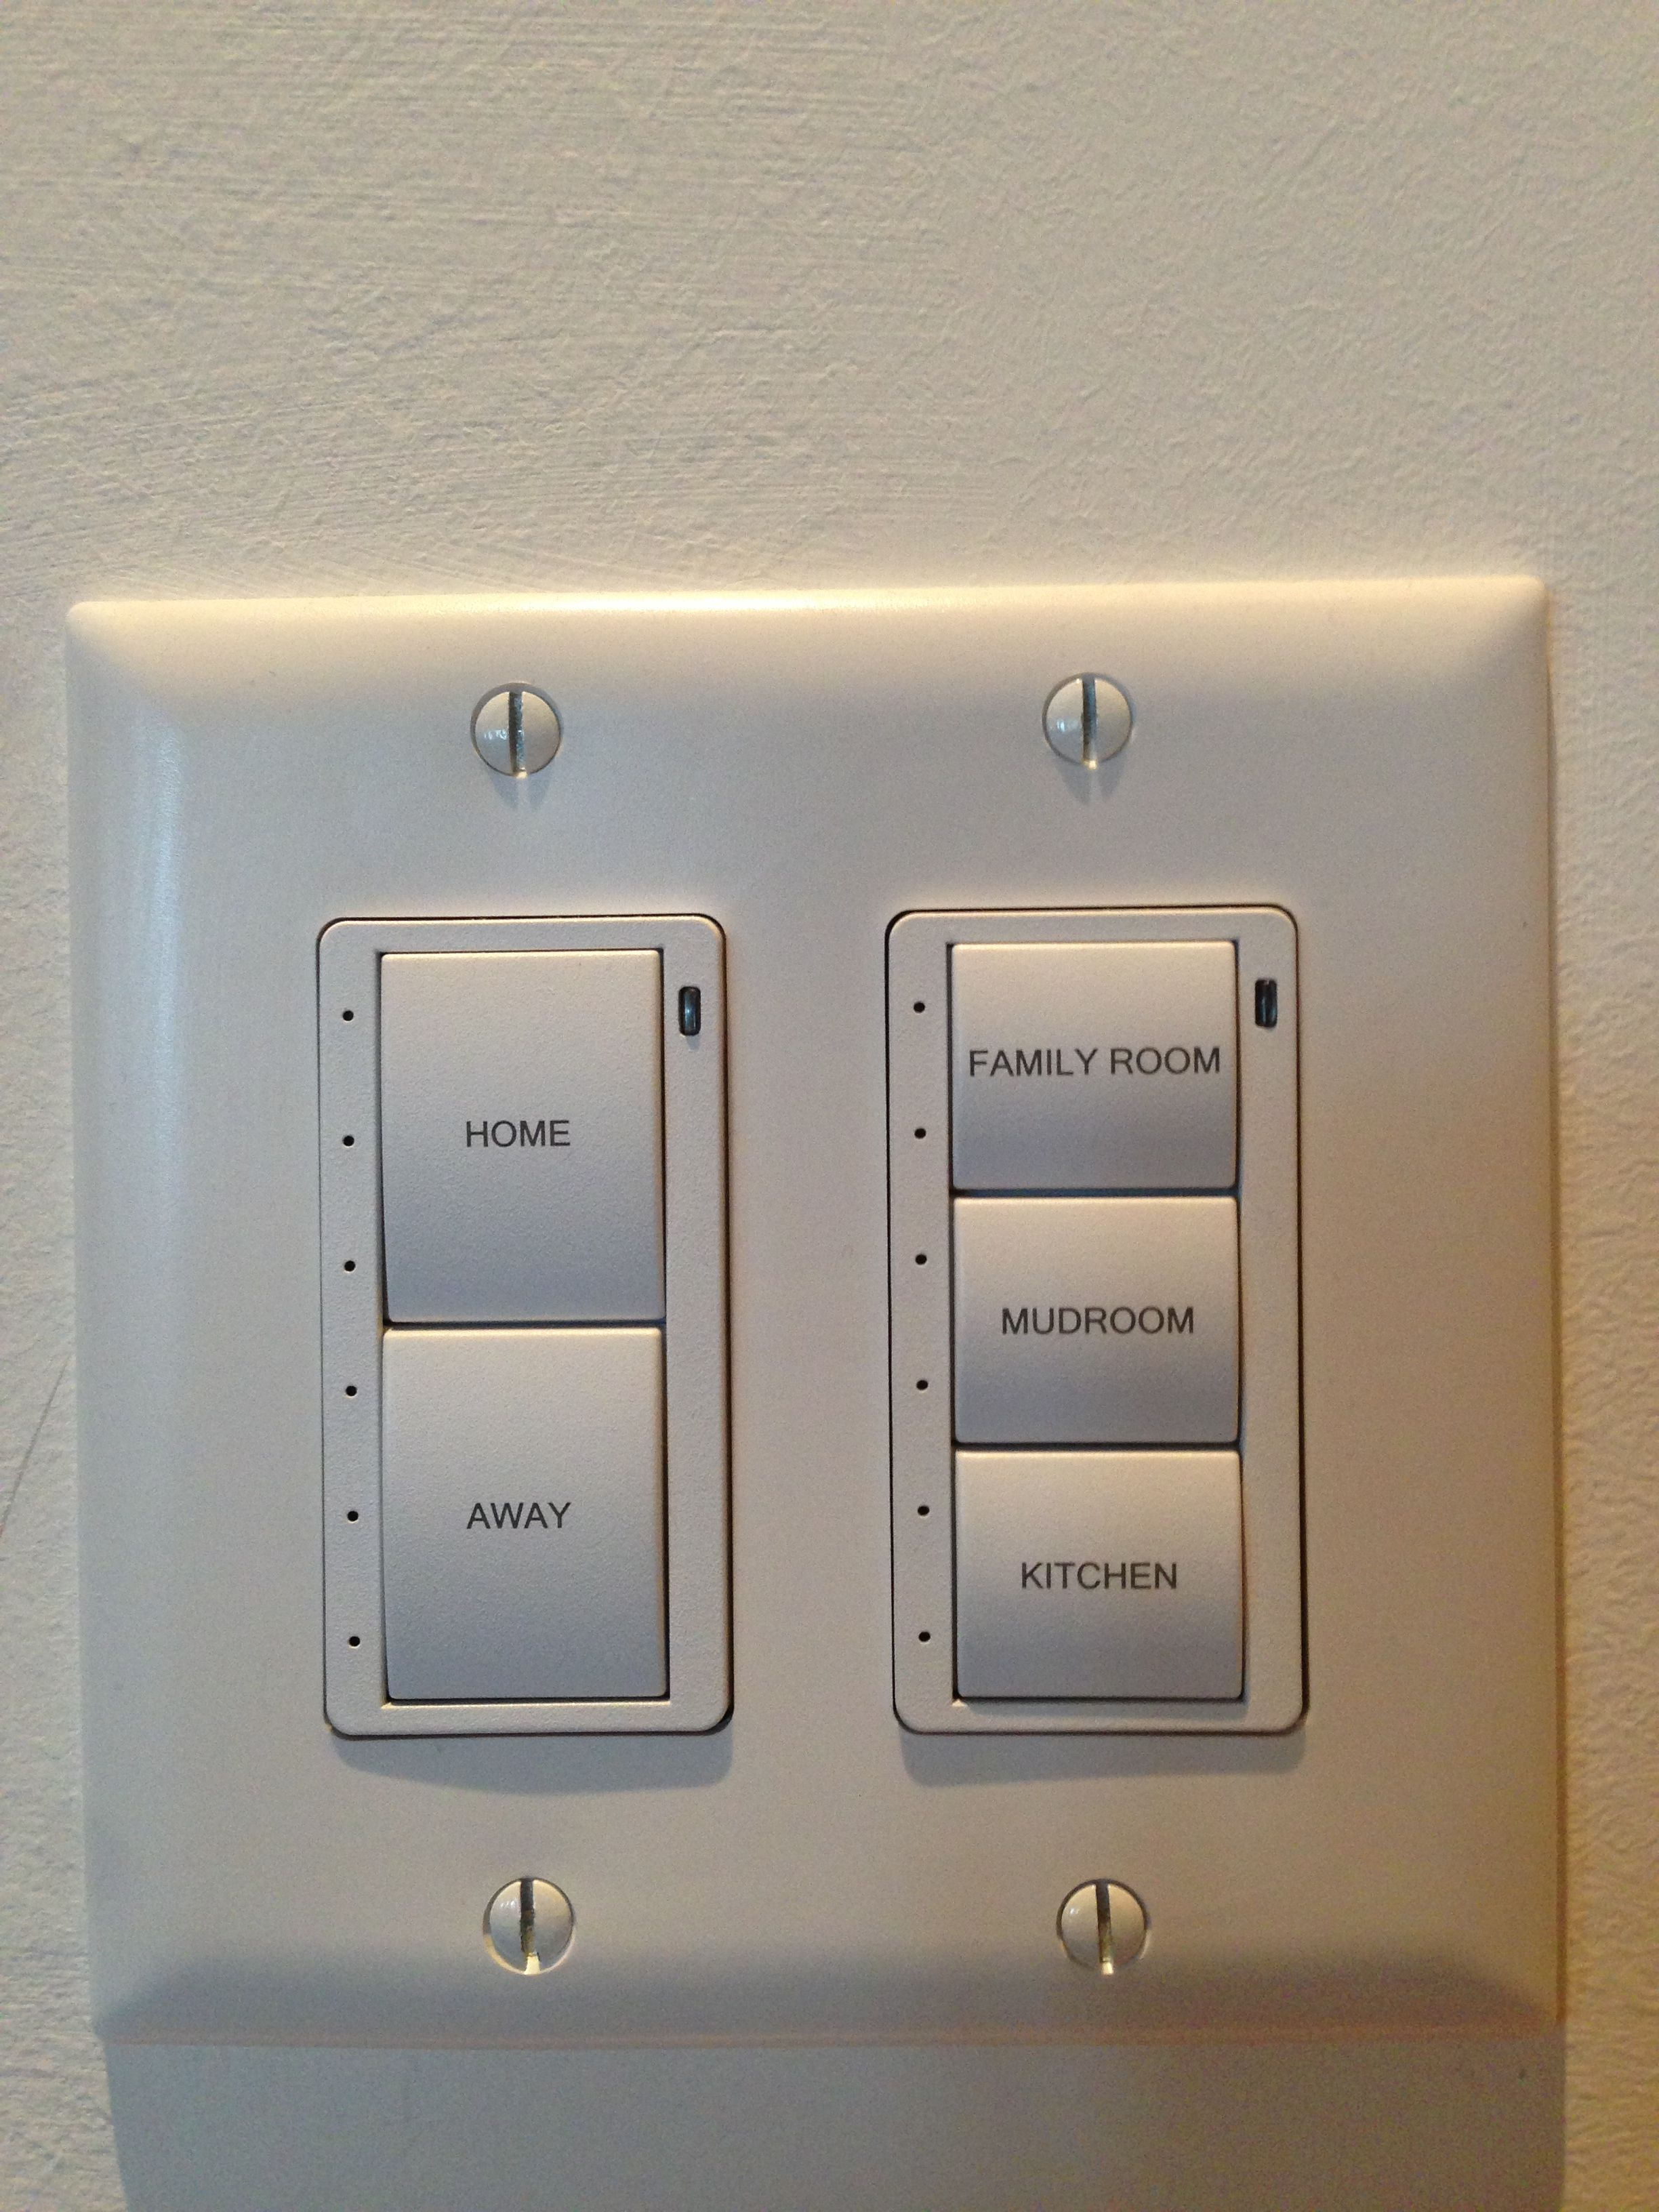 Style of lighting control keypad Stereo Types offers  These